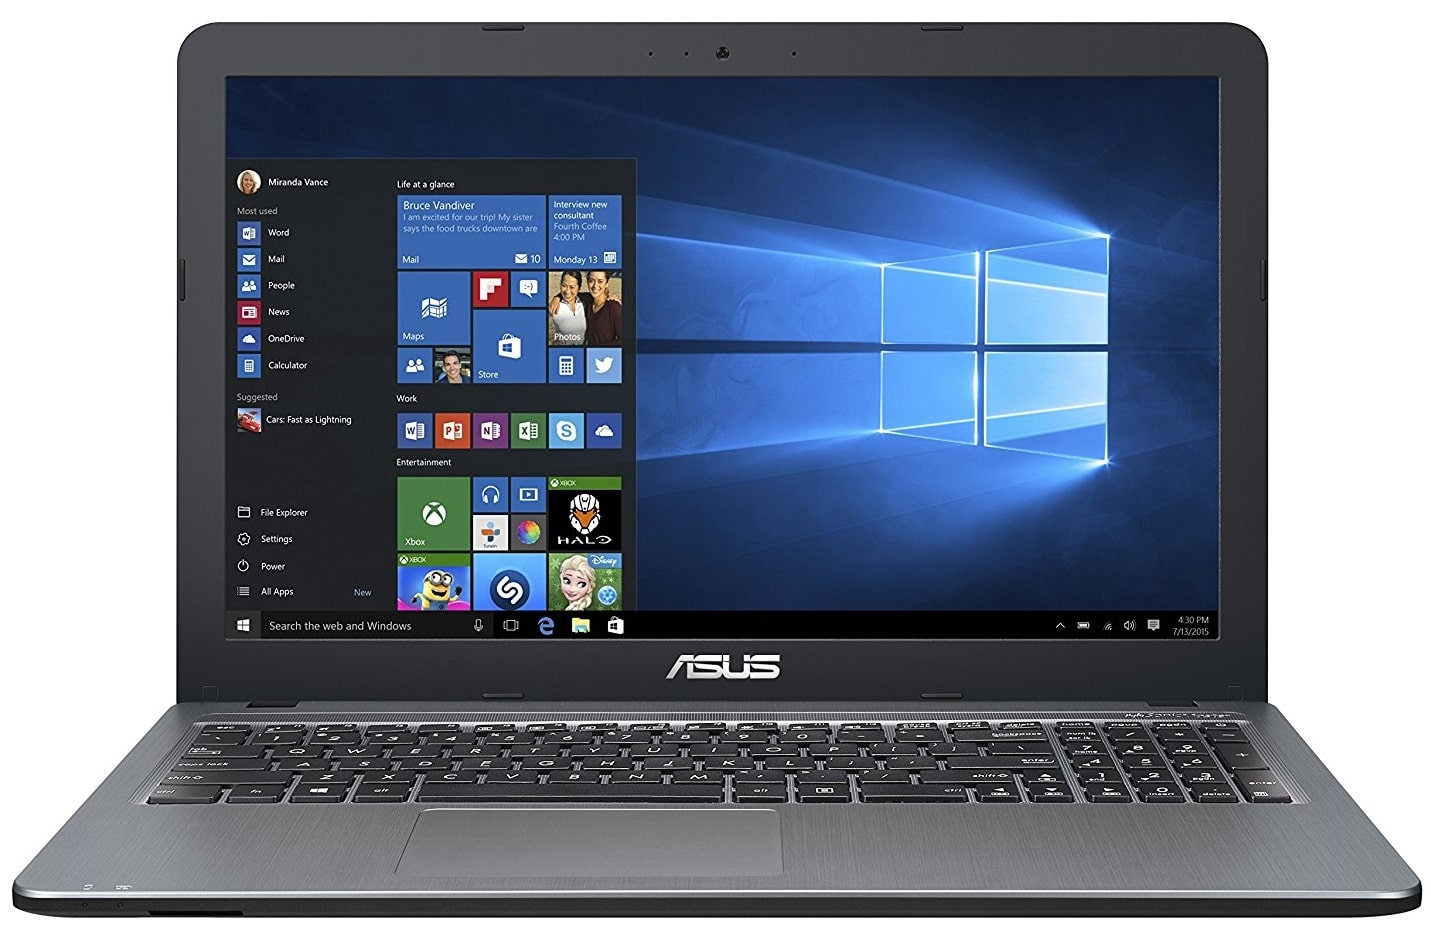 ASUS VivoBook X540SA laptop under 300 pounds uk